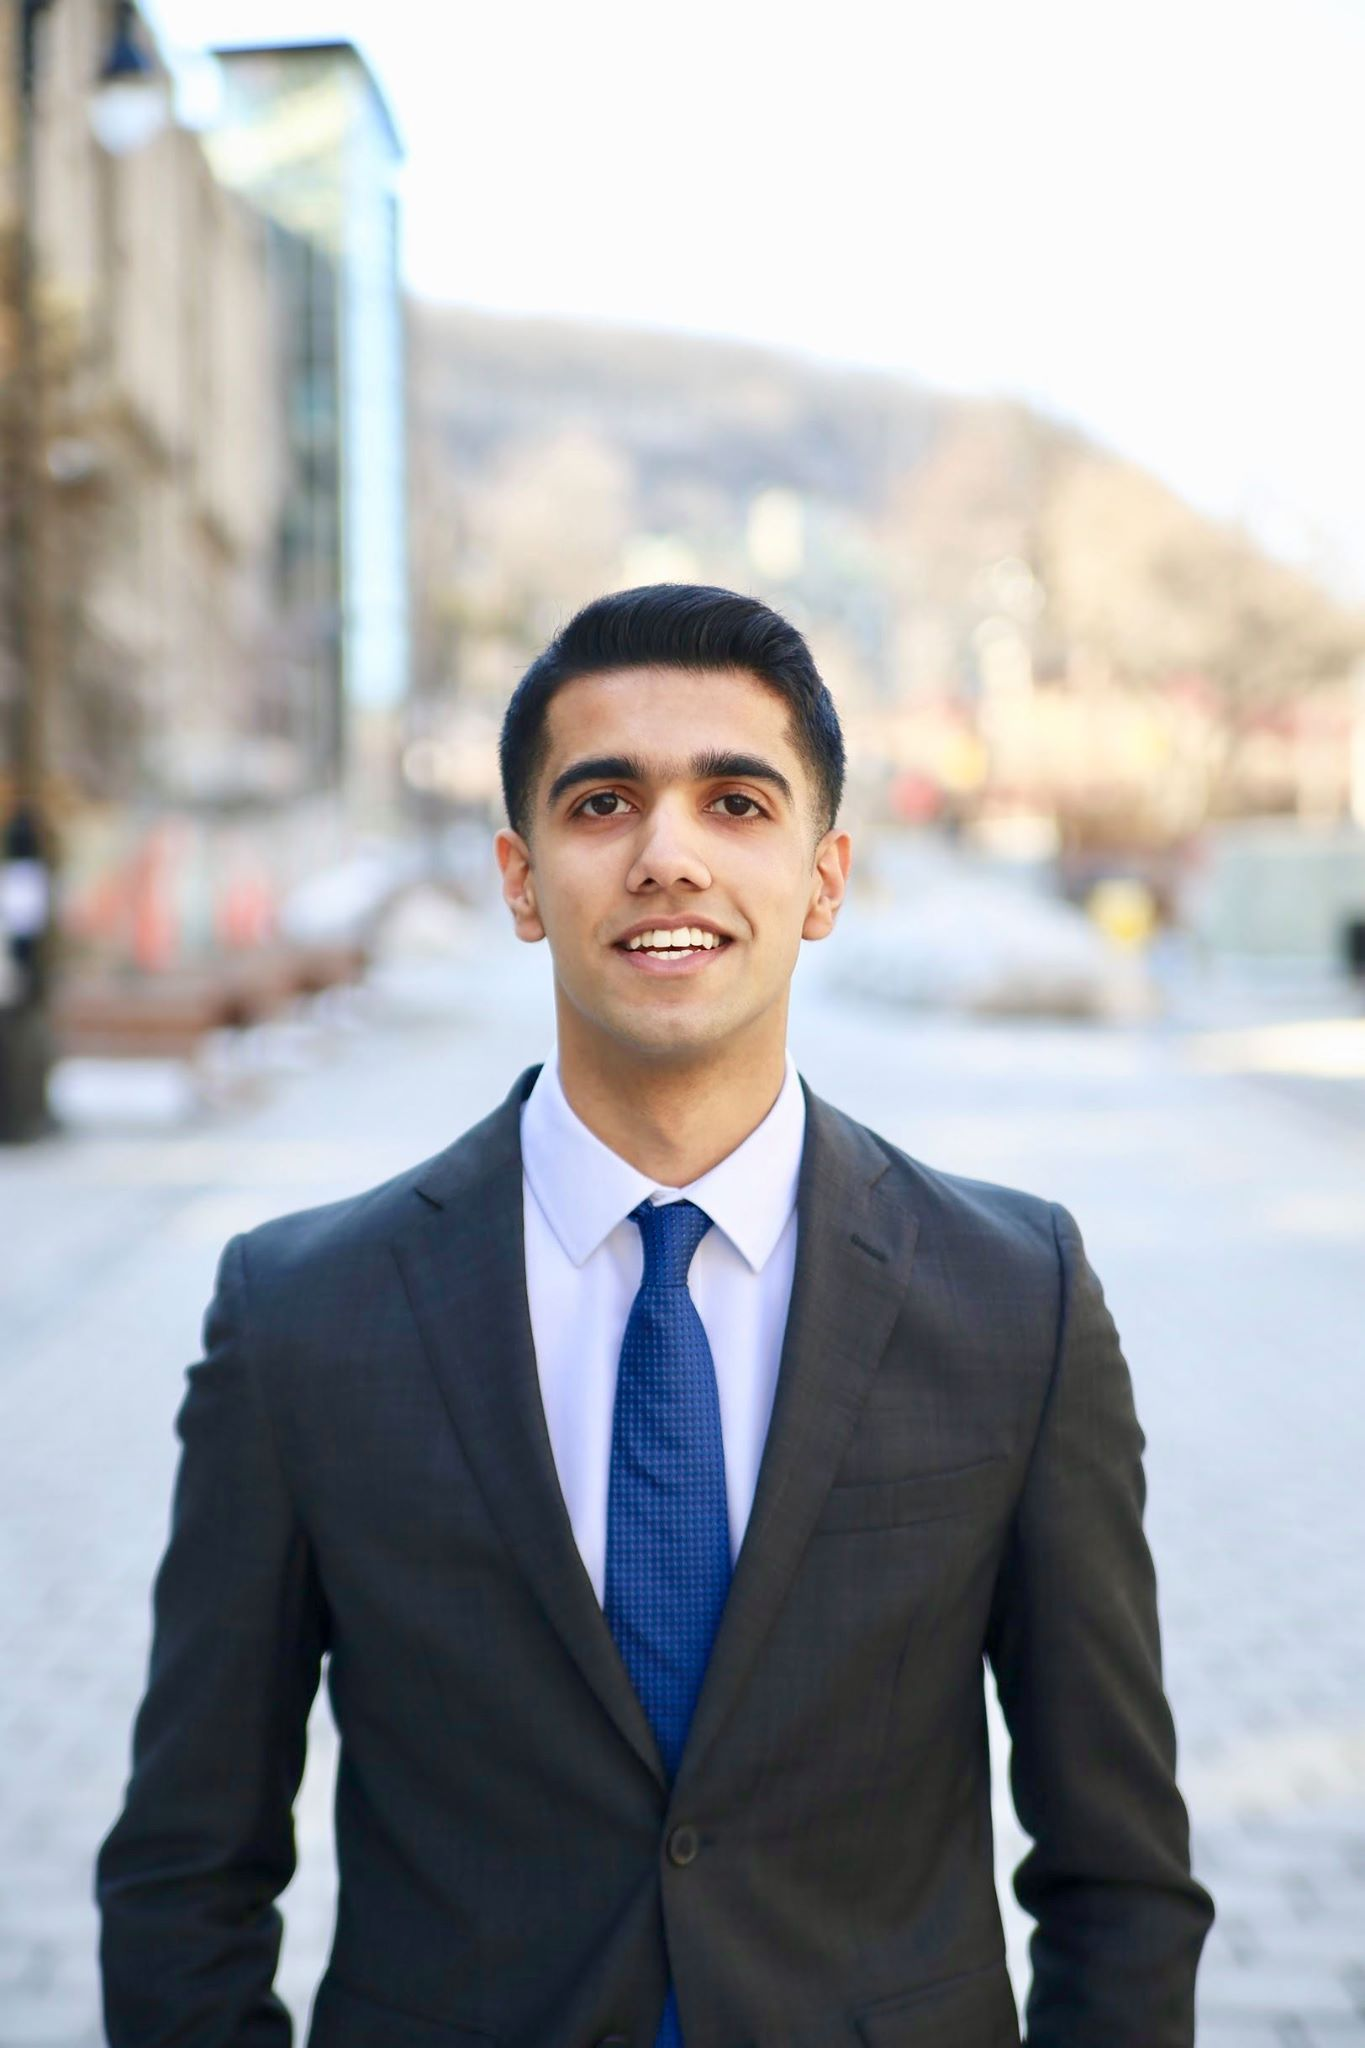 Hashaam Nadeem - Junior VP ExternalHonours Investment Management/U2BiographyBorn and raised in Pakistan. Hashaam is a second-year student at the Desautels Faculty of Management. His interest in Finance was sparked after attending an info session held by MIC in his first-year at McGill. Since then Hashaam has been constantly enhancing his knowledge and experience in the field of Finance and, as part of the MIC executive team, hopes to spark the same enthusiasm in other students. Outside of finance, Hashaam enjoys playing soccer, listening to Bollywood music, and dinning out with friends.